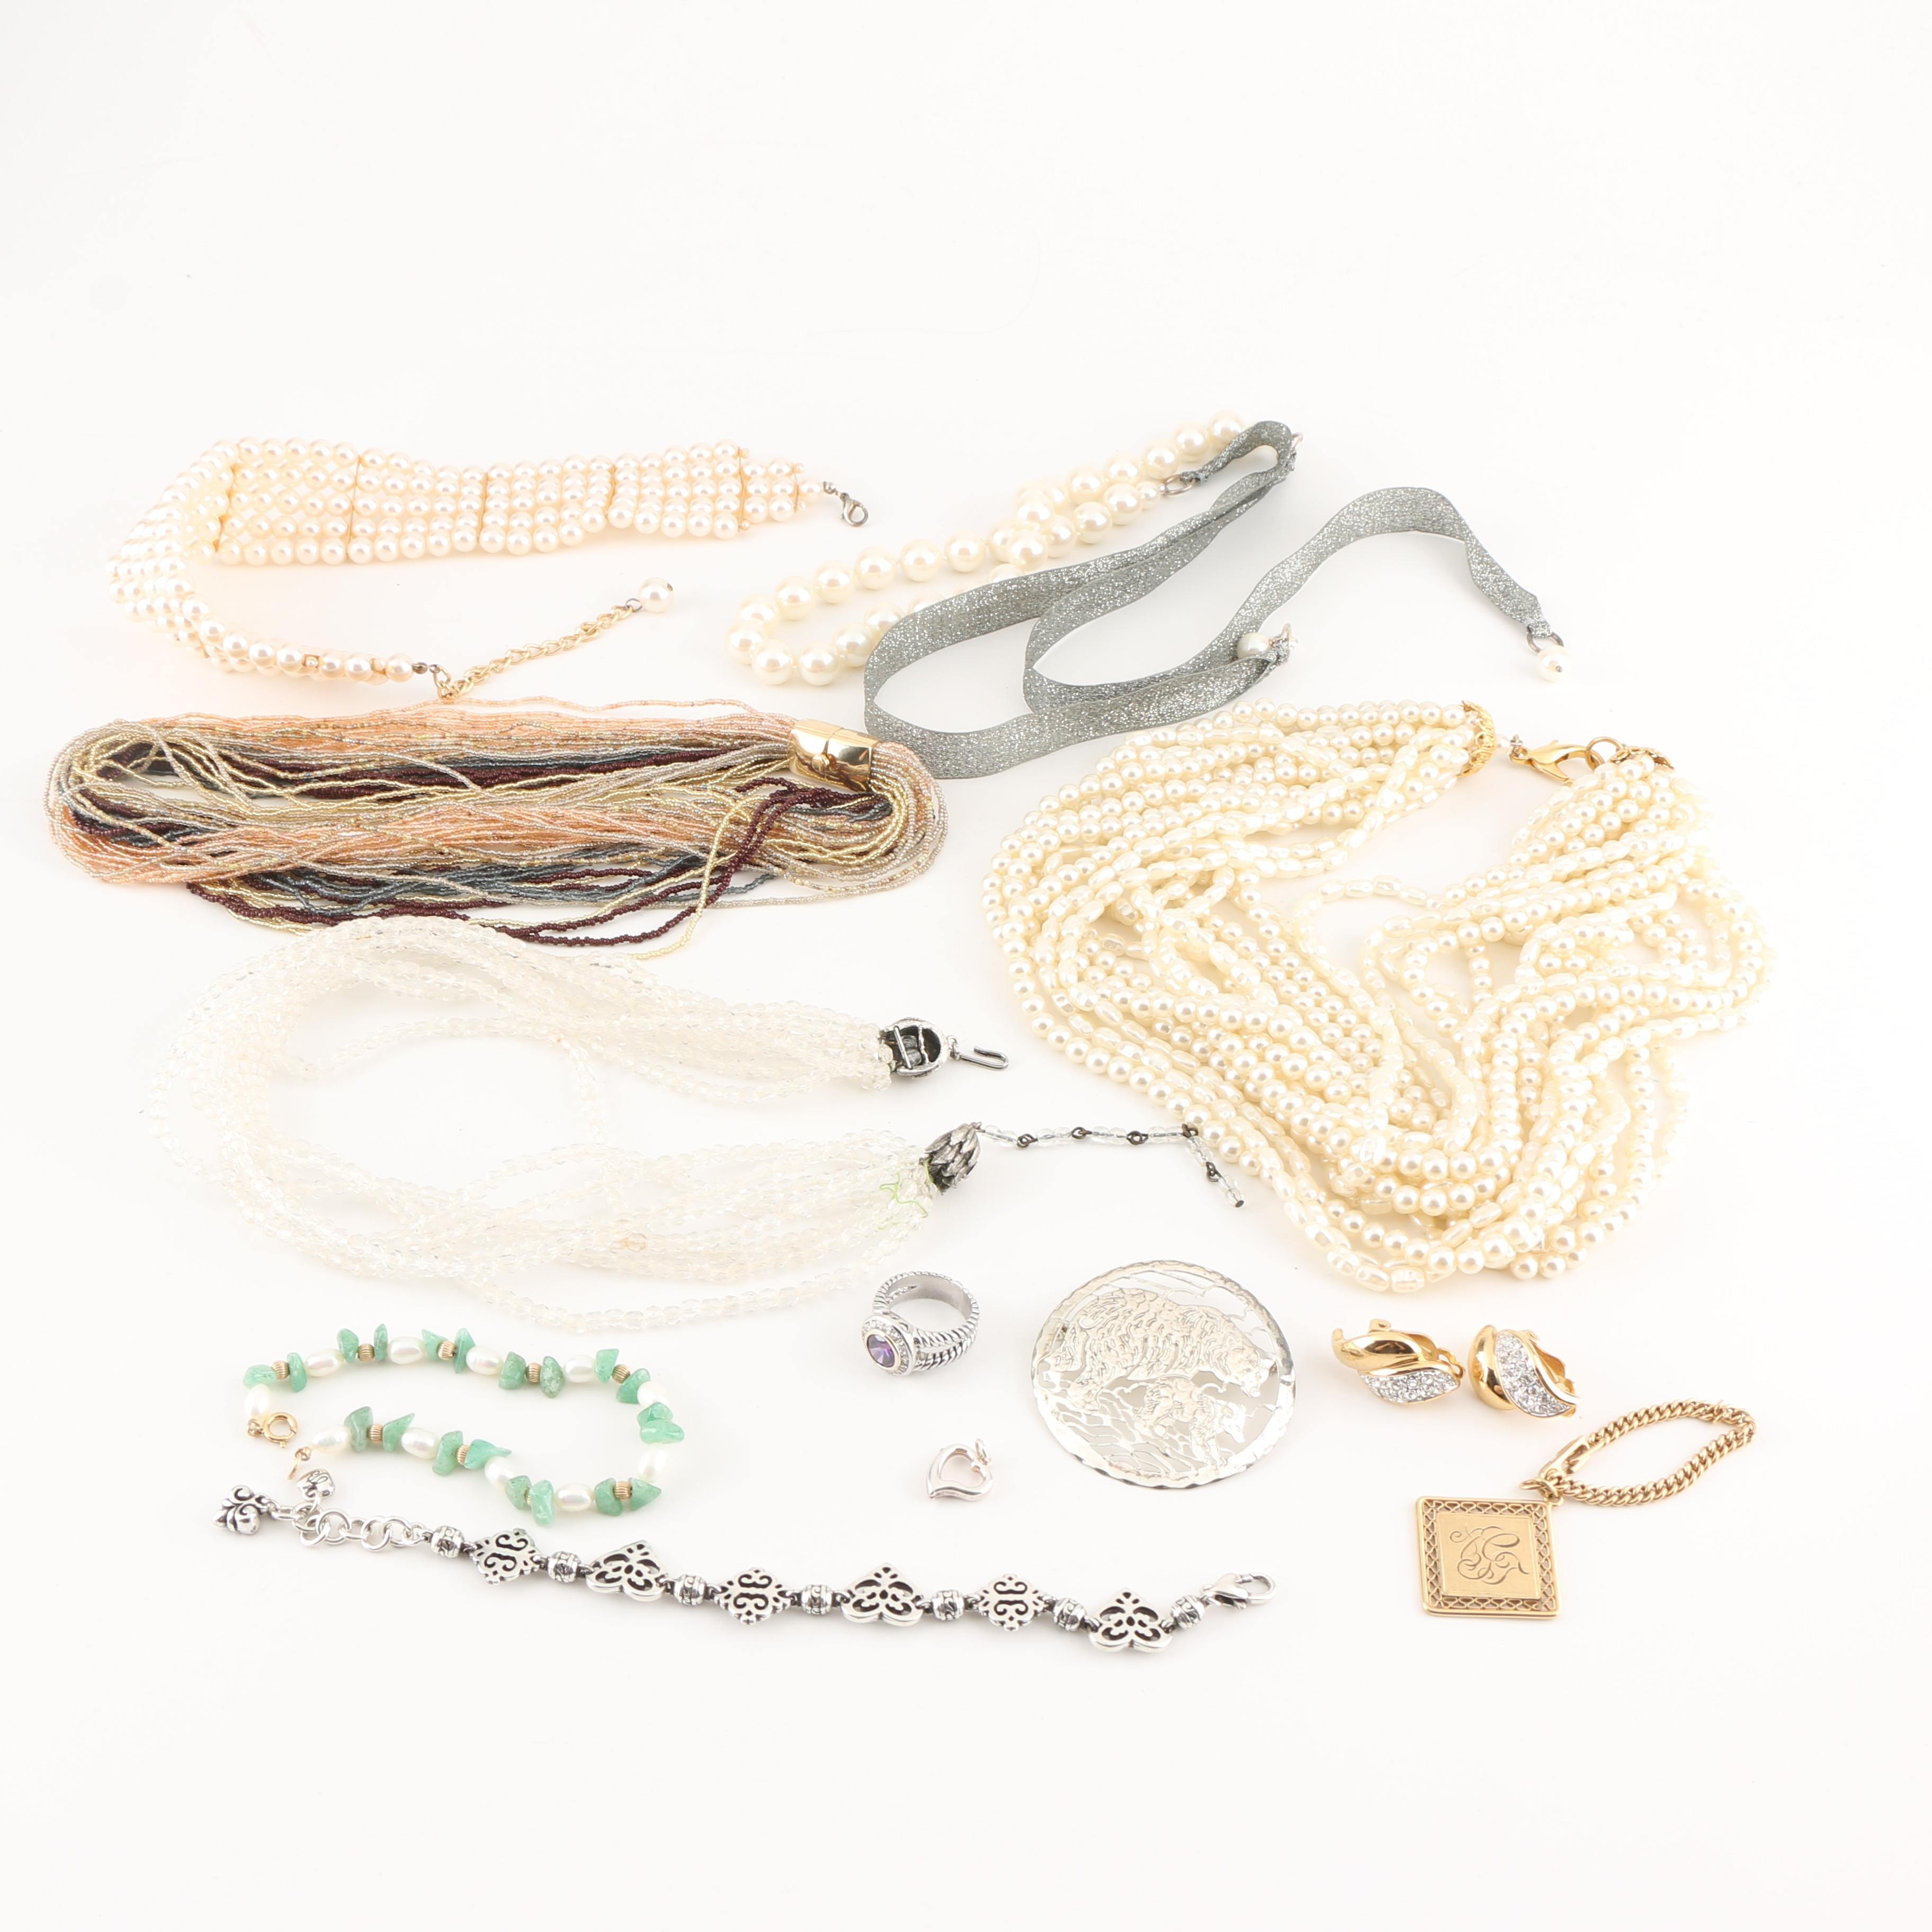 Assortment of Costume Jewelry Featuring a Brighton Bracelet